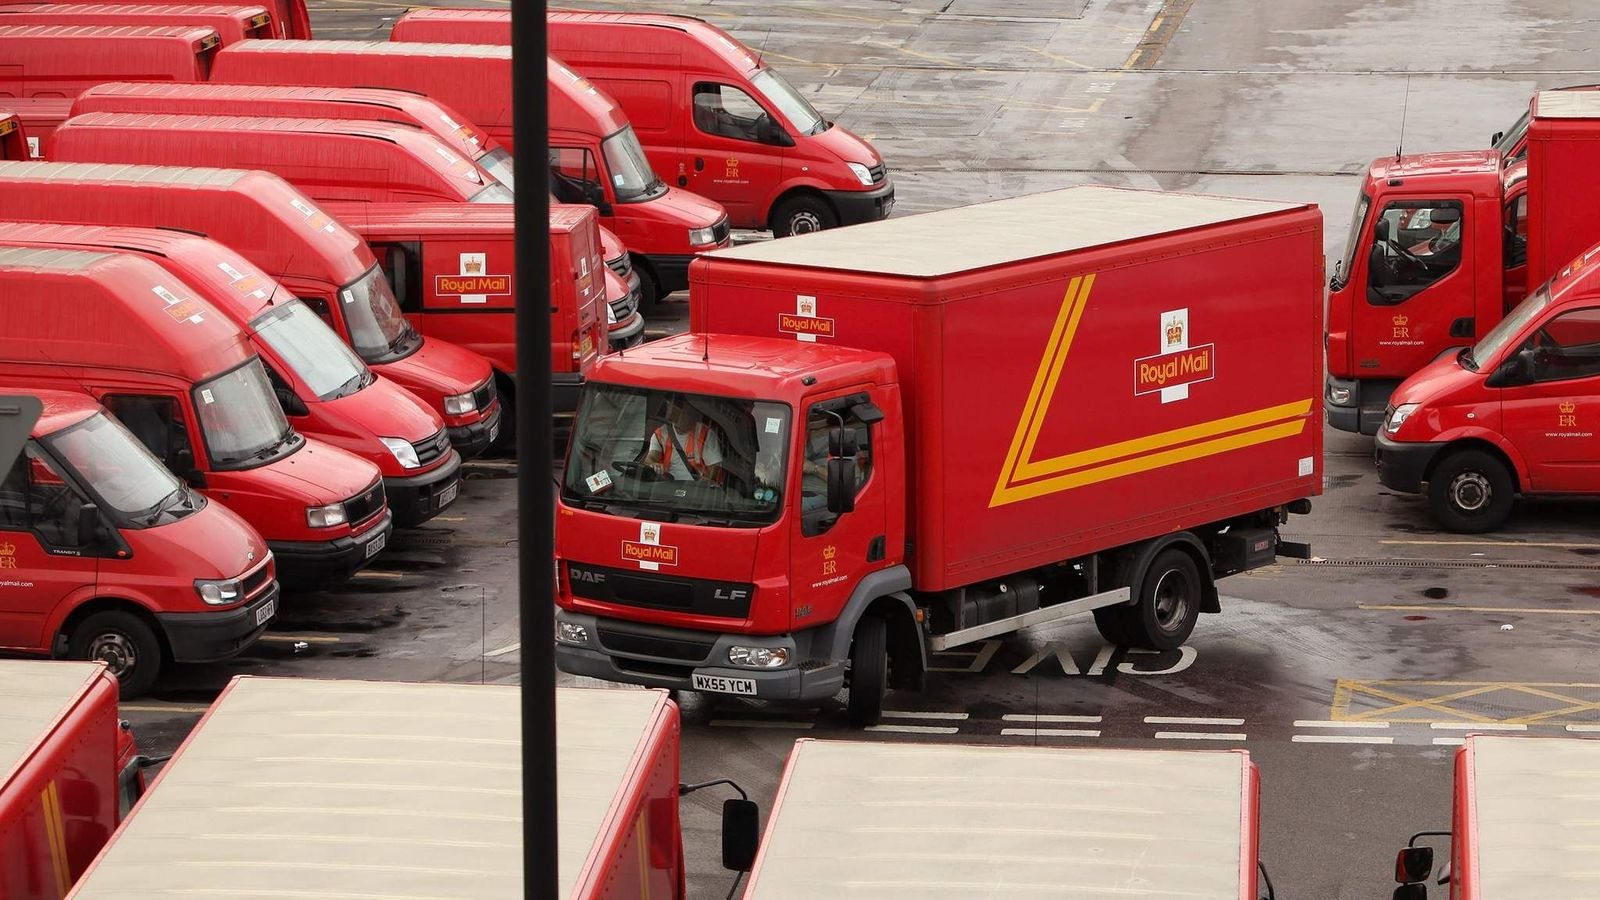 Royal Mail Group admits breaking competition law that left customers paying higher prices